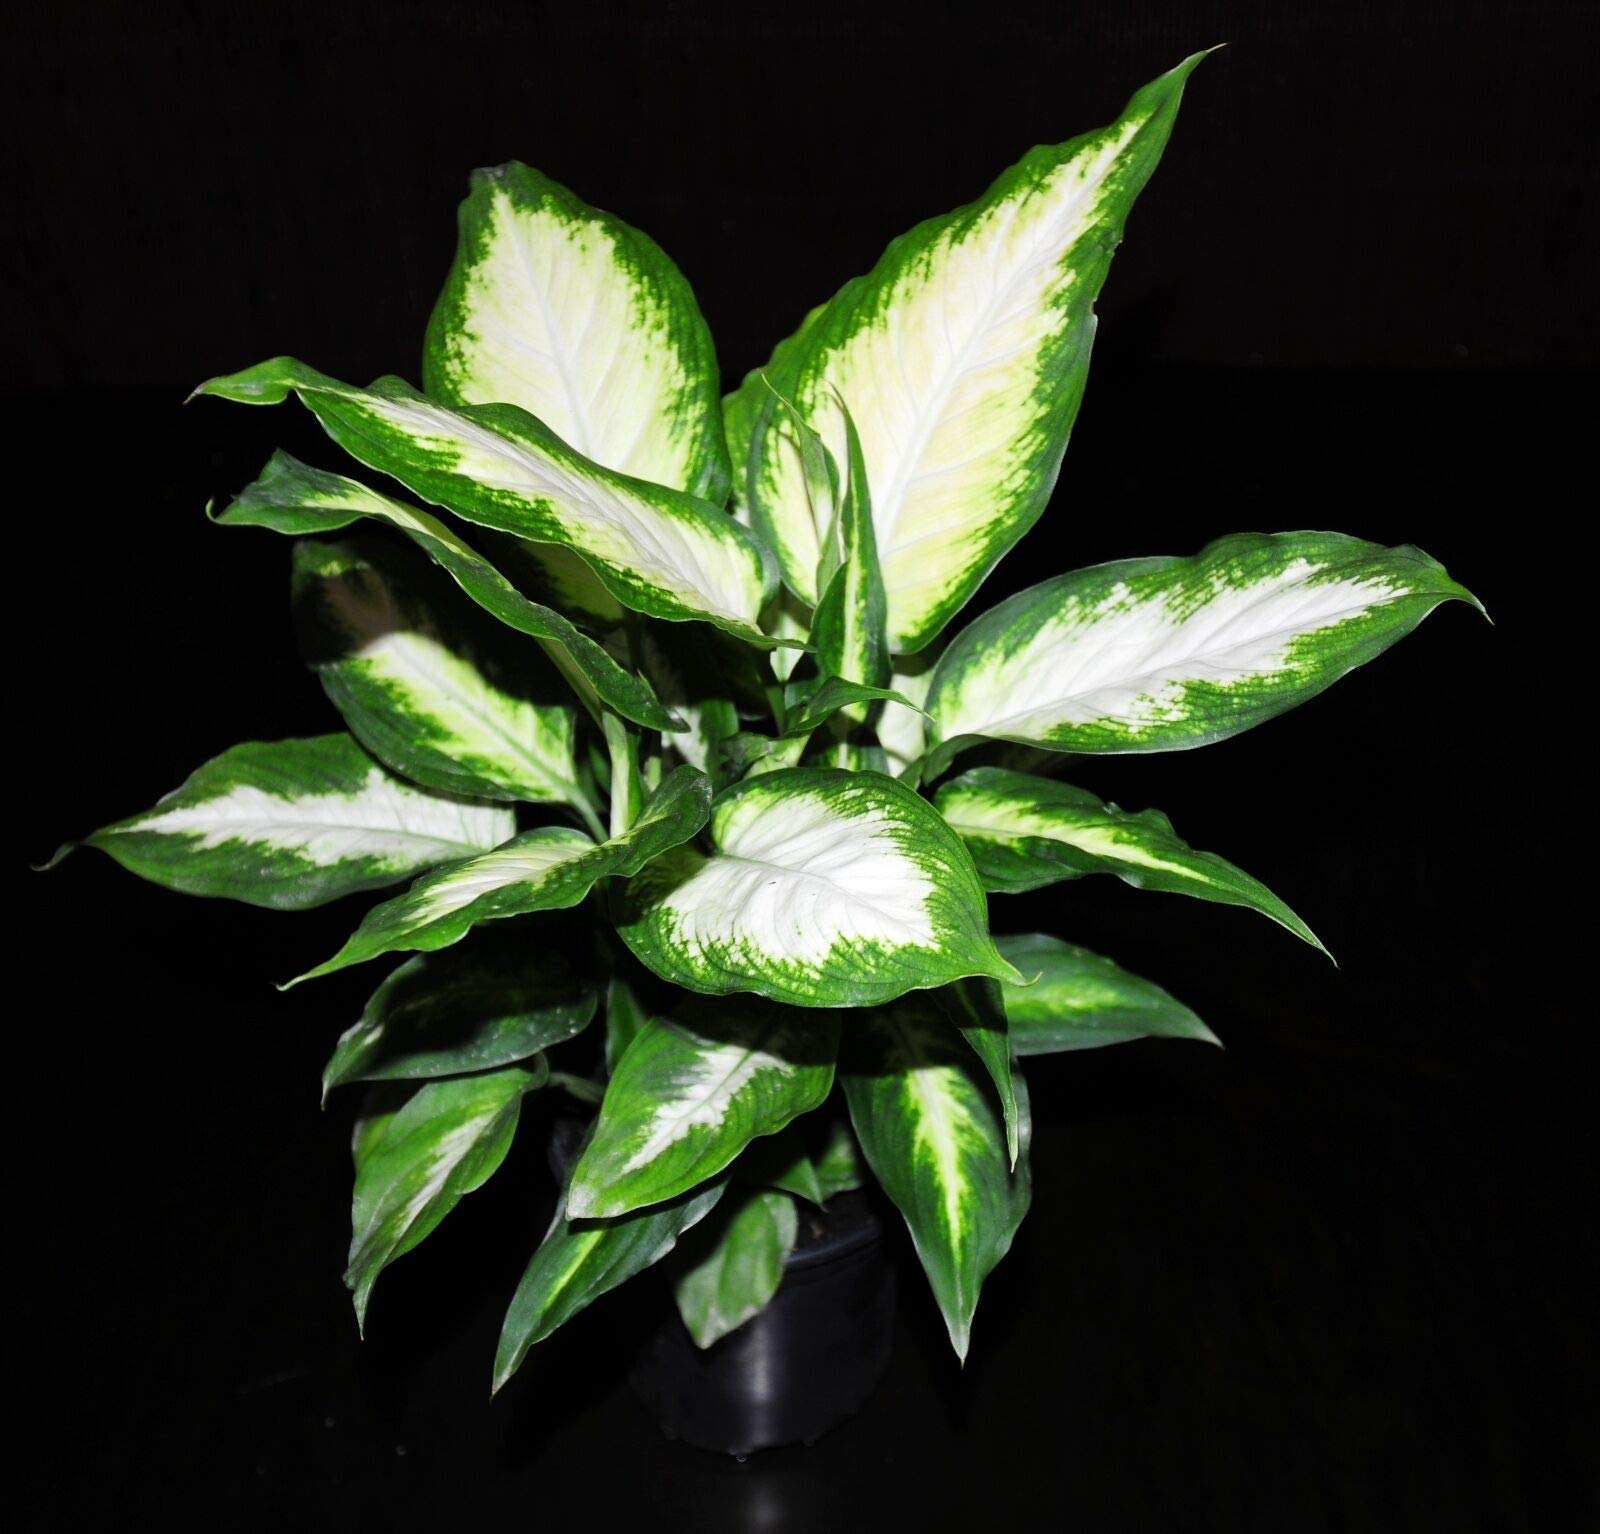 Dieffenbachia Camille Live Tropical Houseplant Shipped in 4''Pot~Large & Healthy! (Premium Quality) by AY-Premium